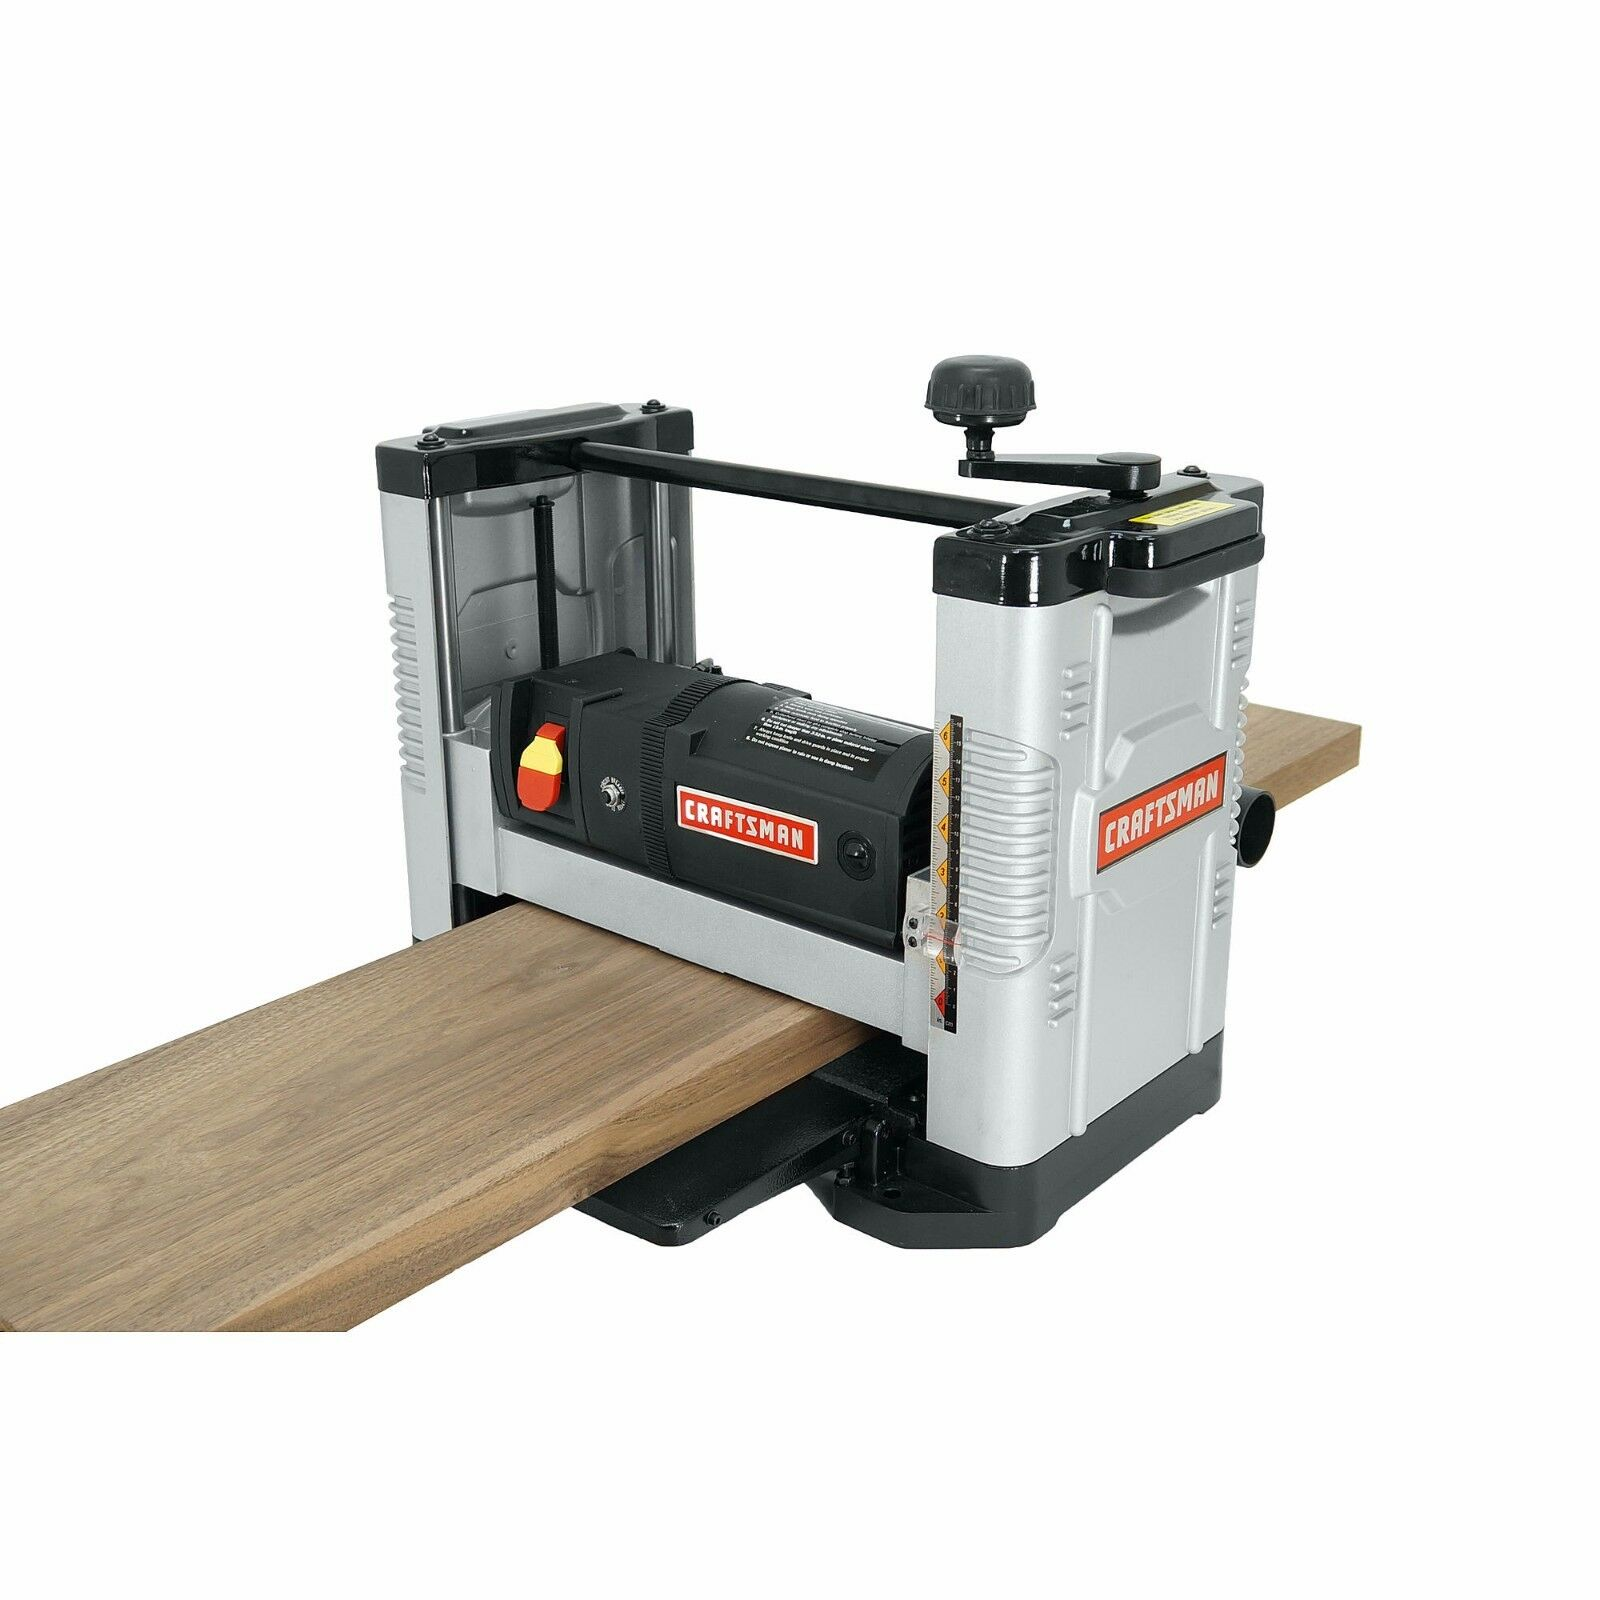 Craftsman 12 5 in bench top planer cutter brand new 12 5 in ebay Bench planer